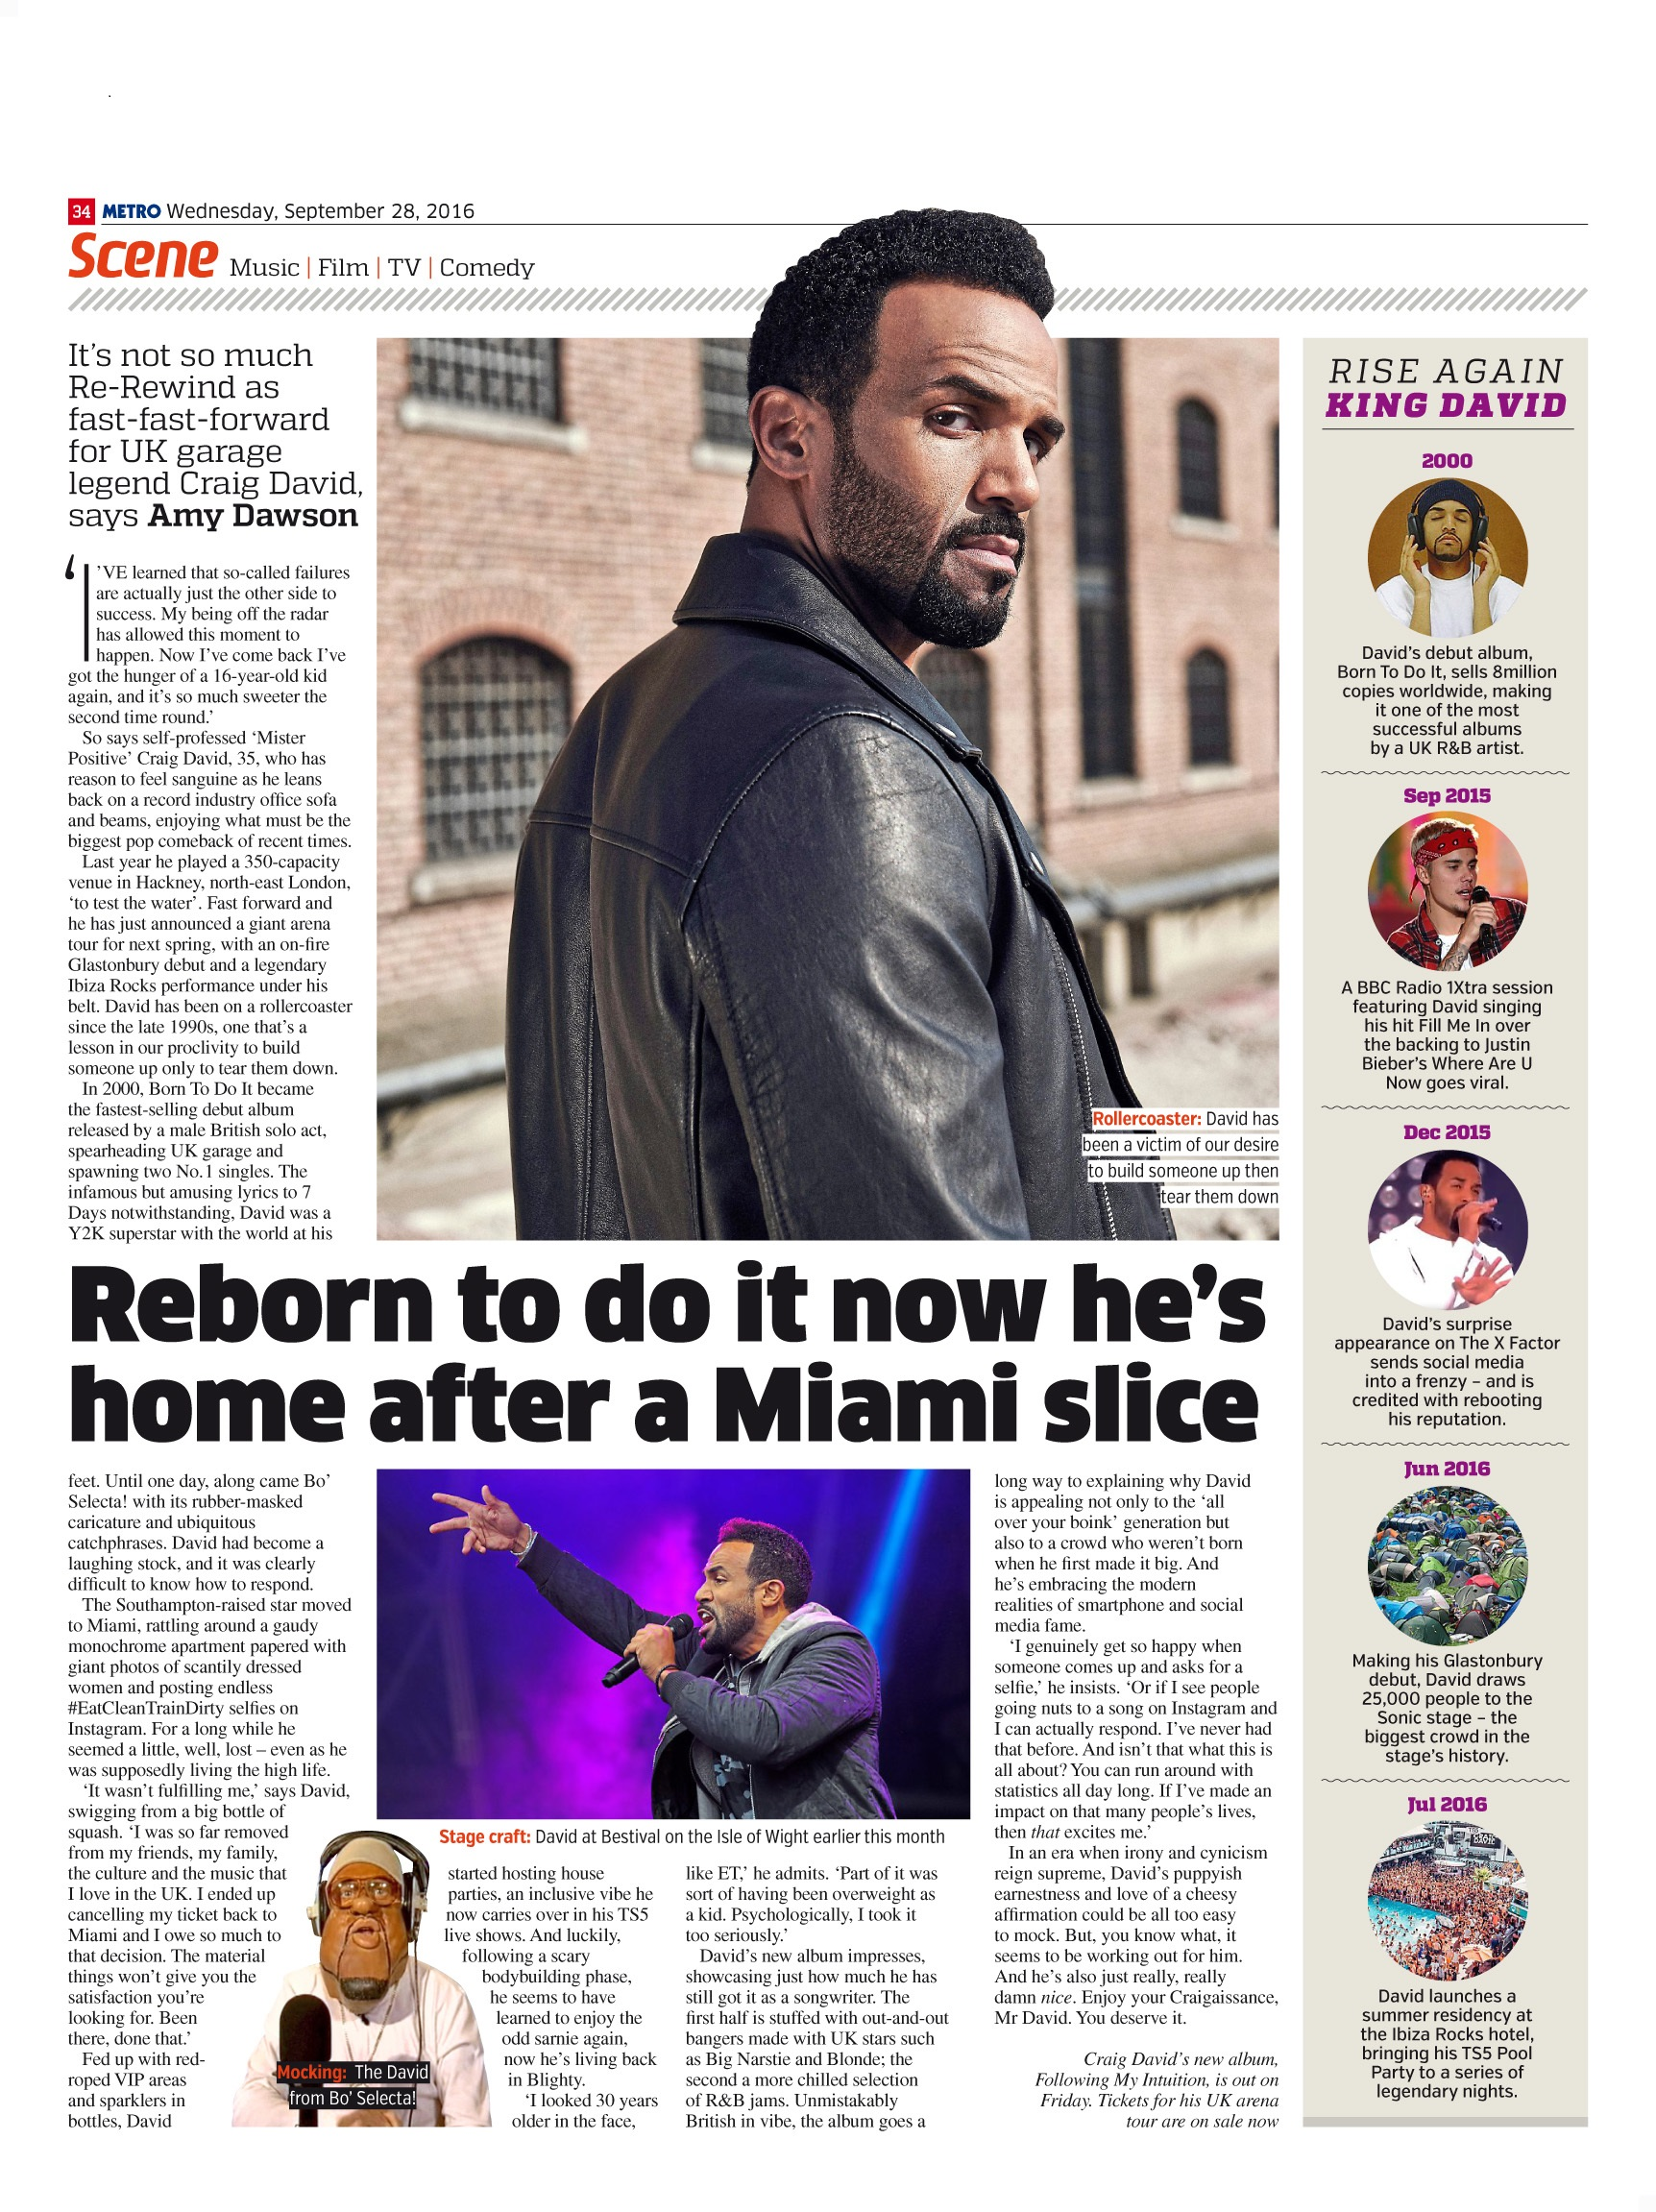 Reborn To Do It: An Interview with Craig David (Metro, 28th Sep 2016)